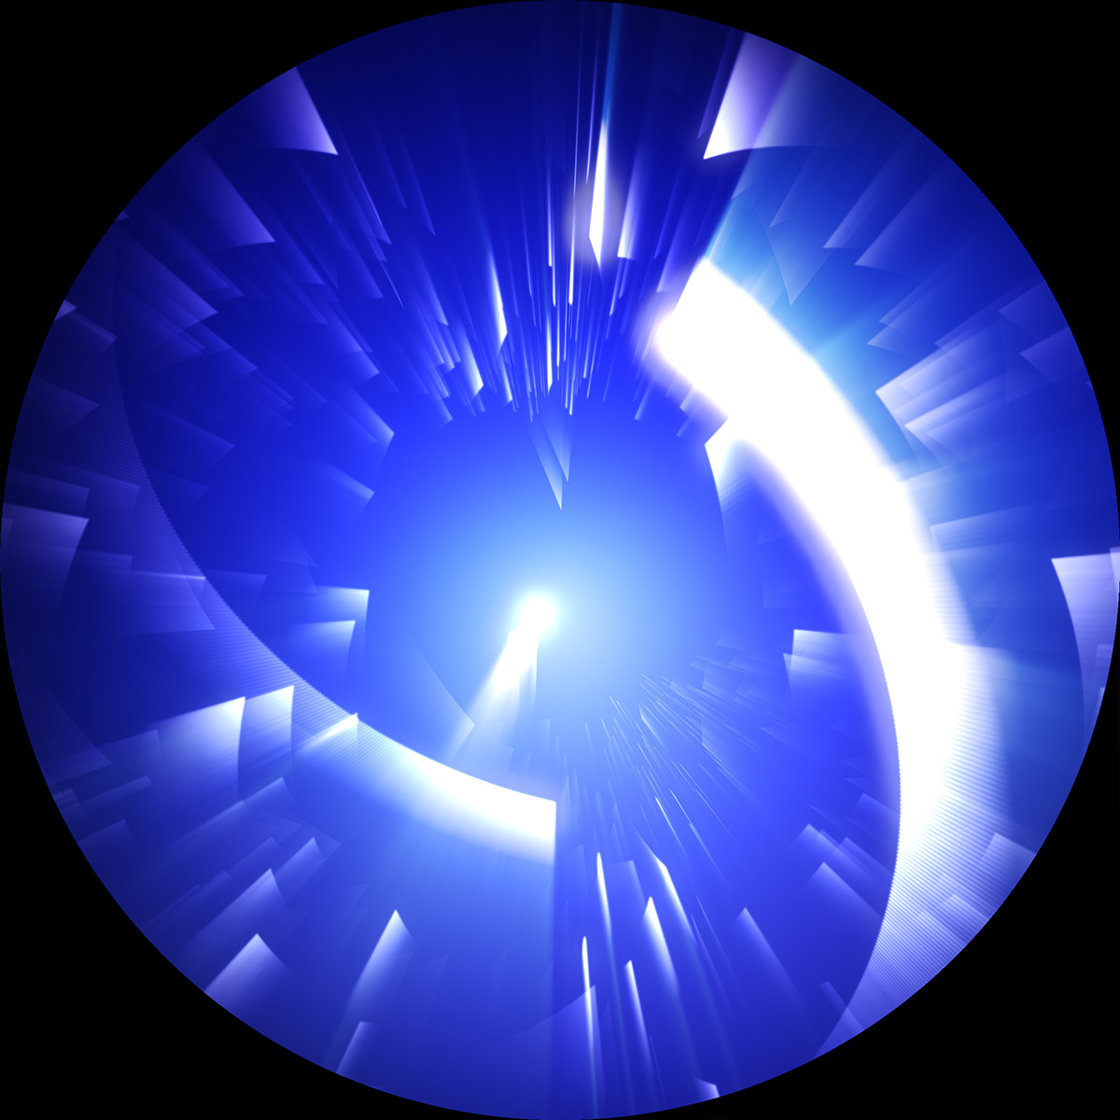 A fisheye projection image from Stardancer's Waltz